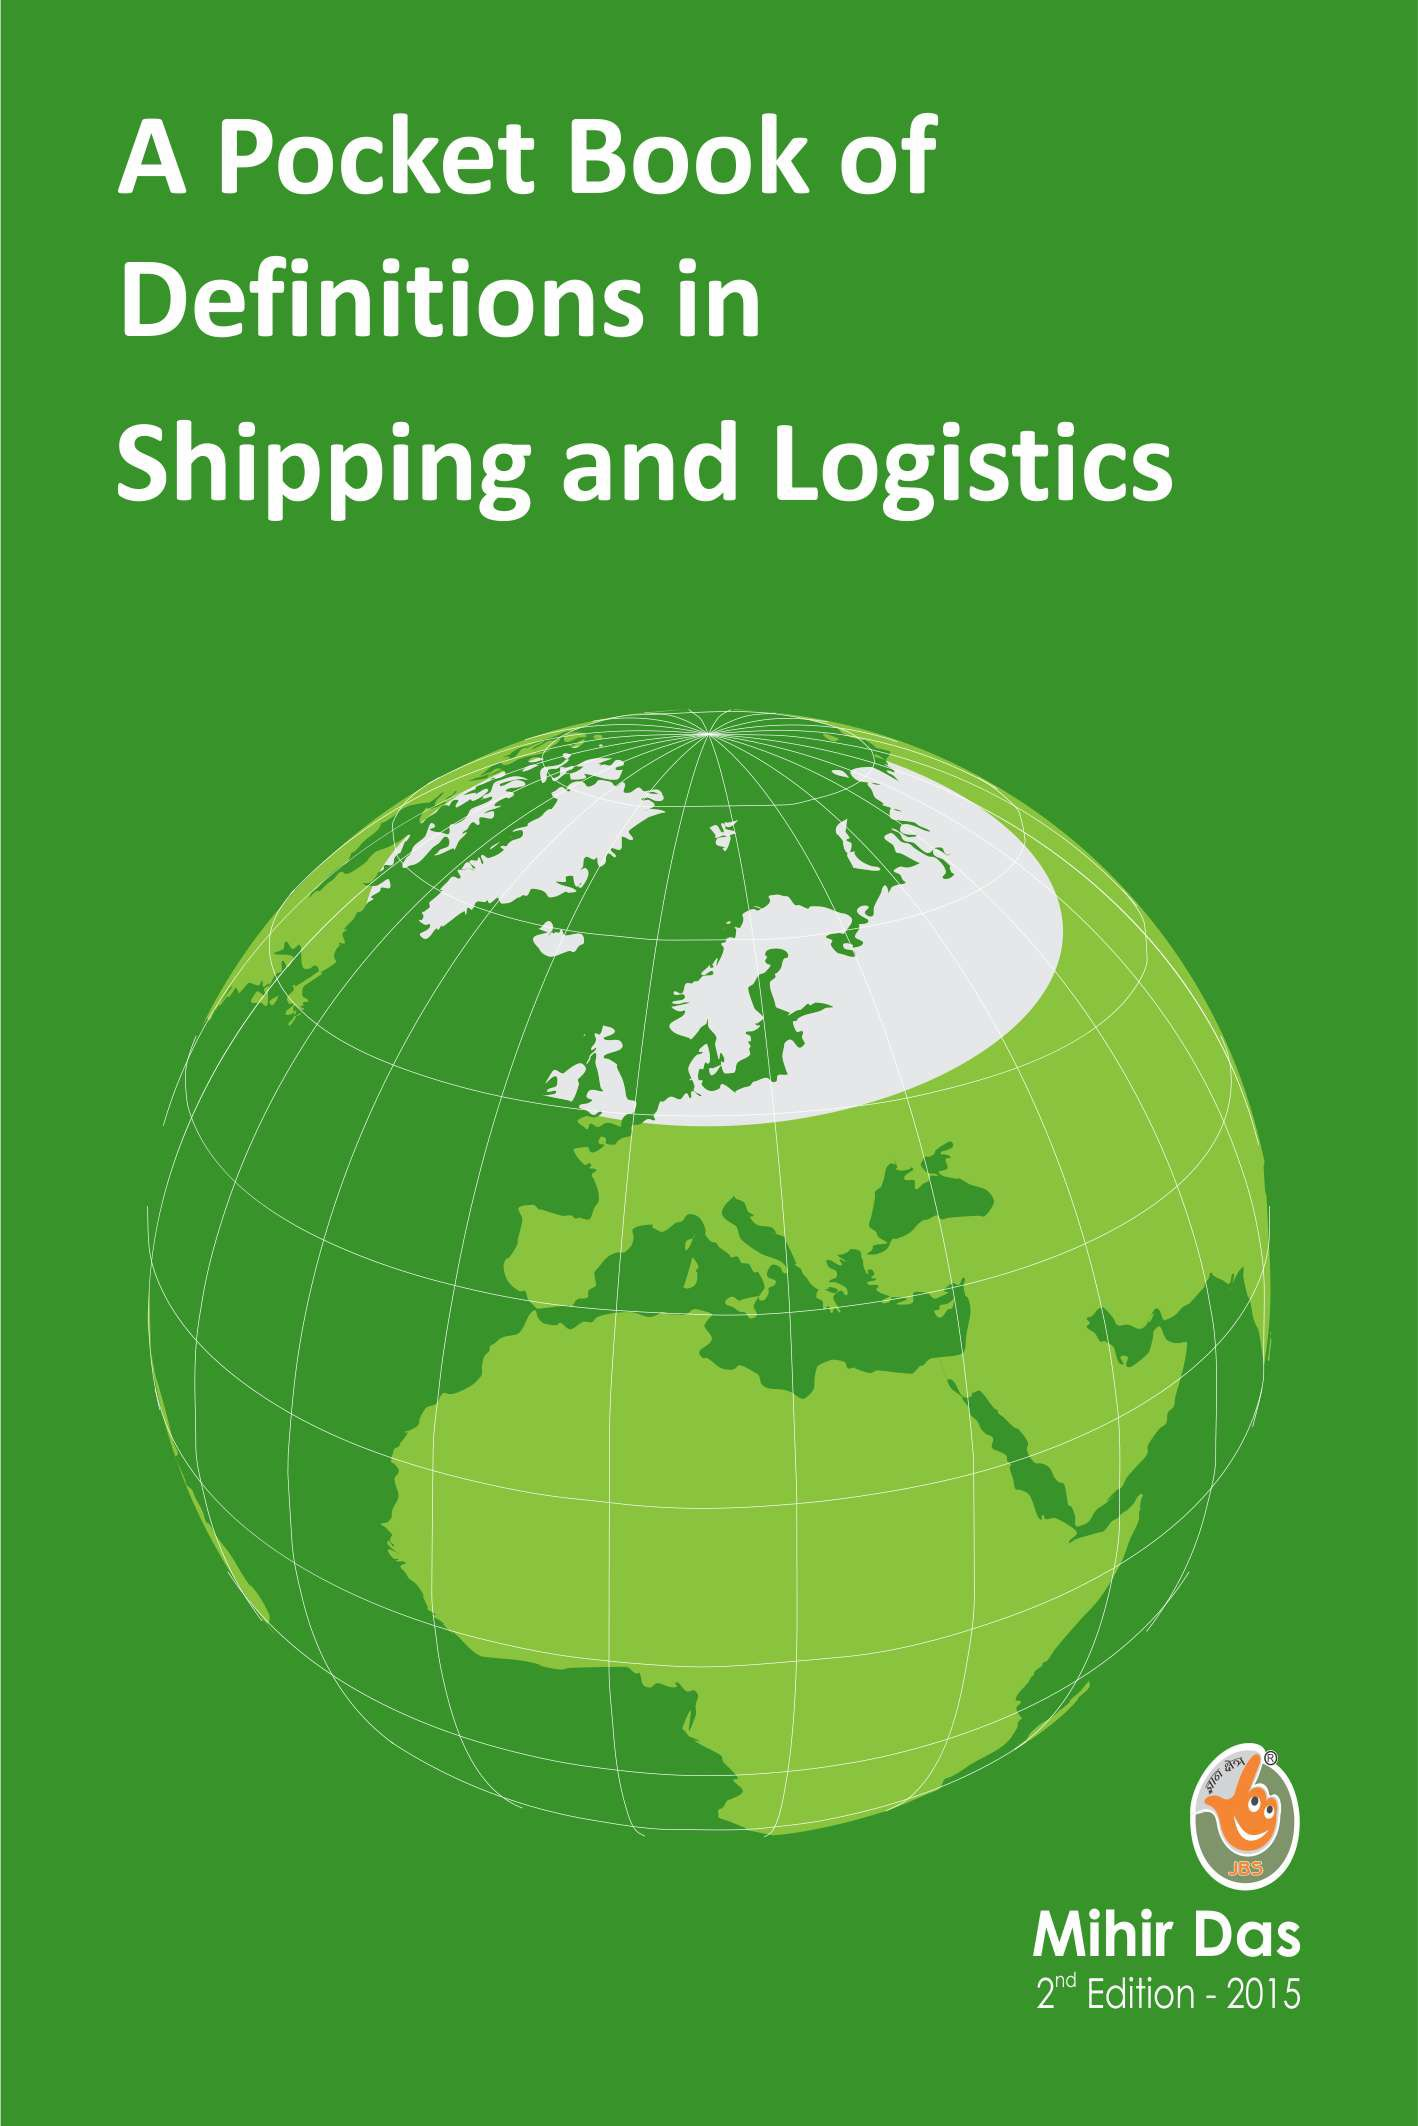 A Pocket Book of Definitions in Shipping and Logistics 2nd Edition